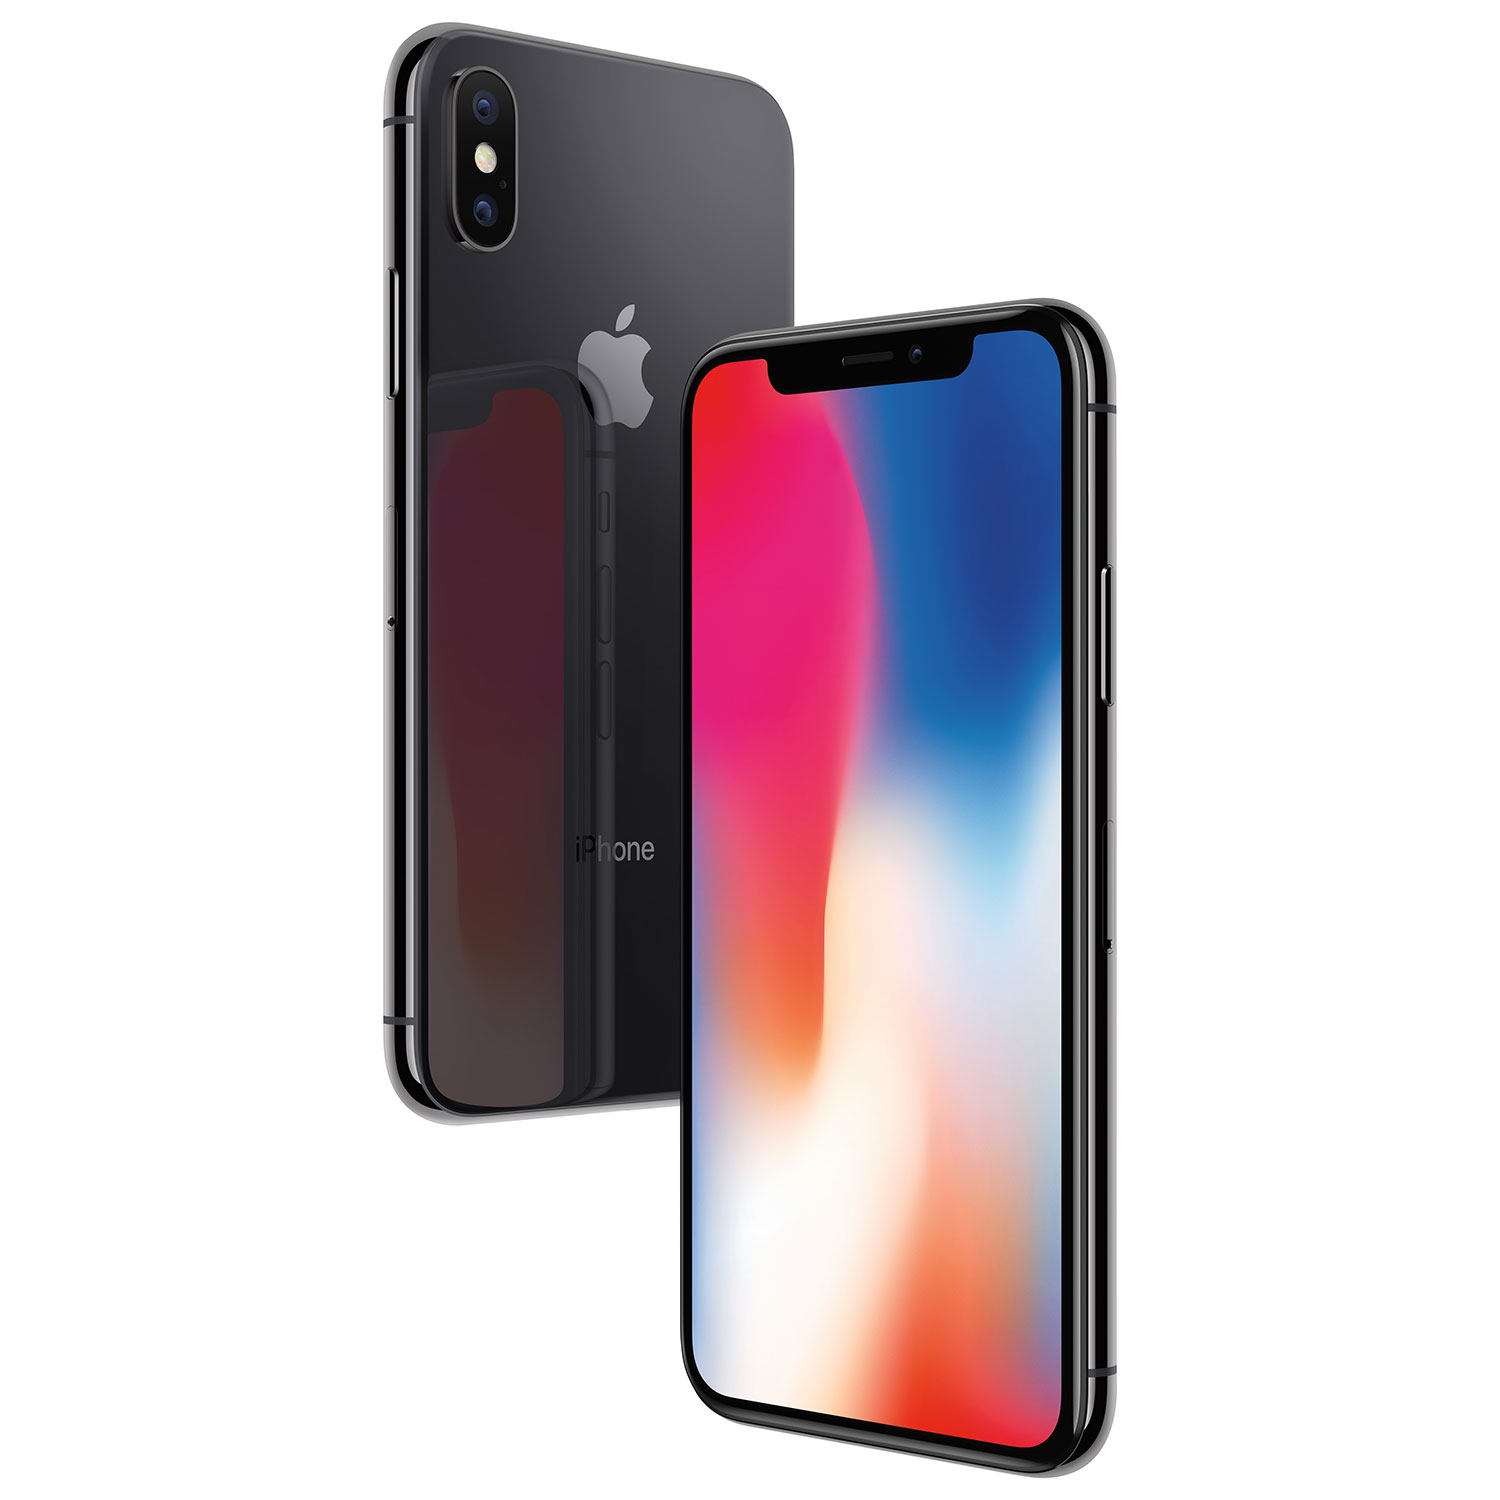 iPhone X reviews, opinions and consumer feedback